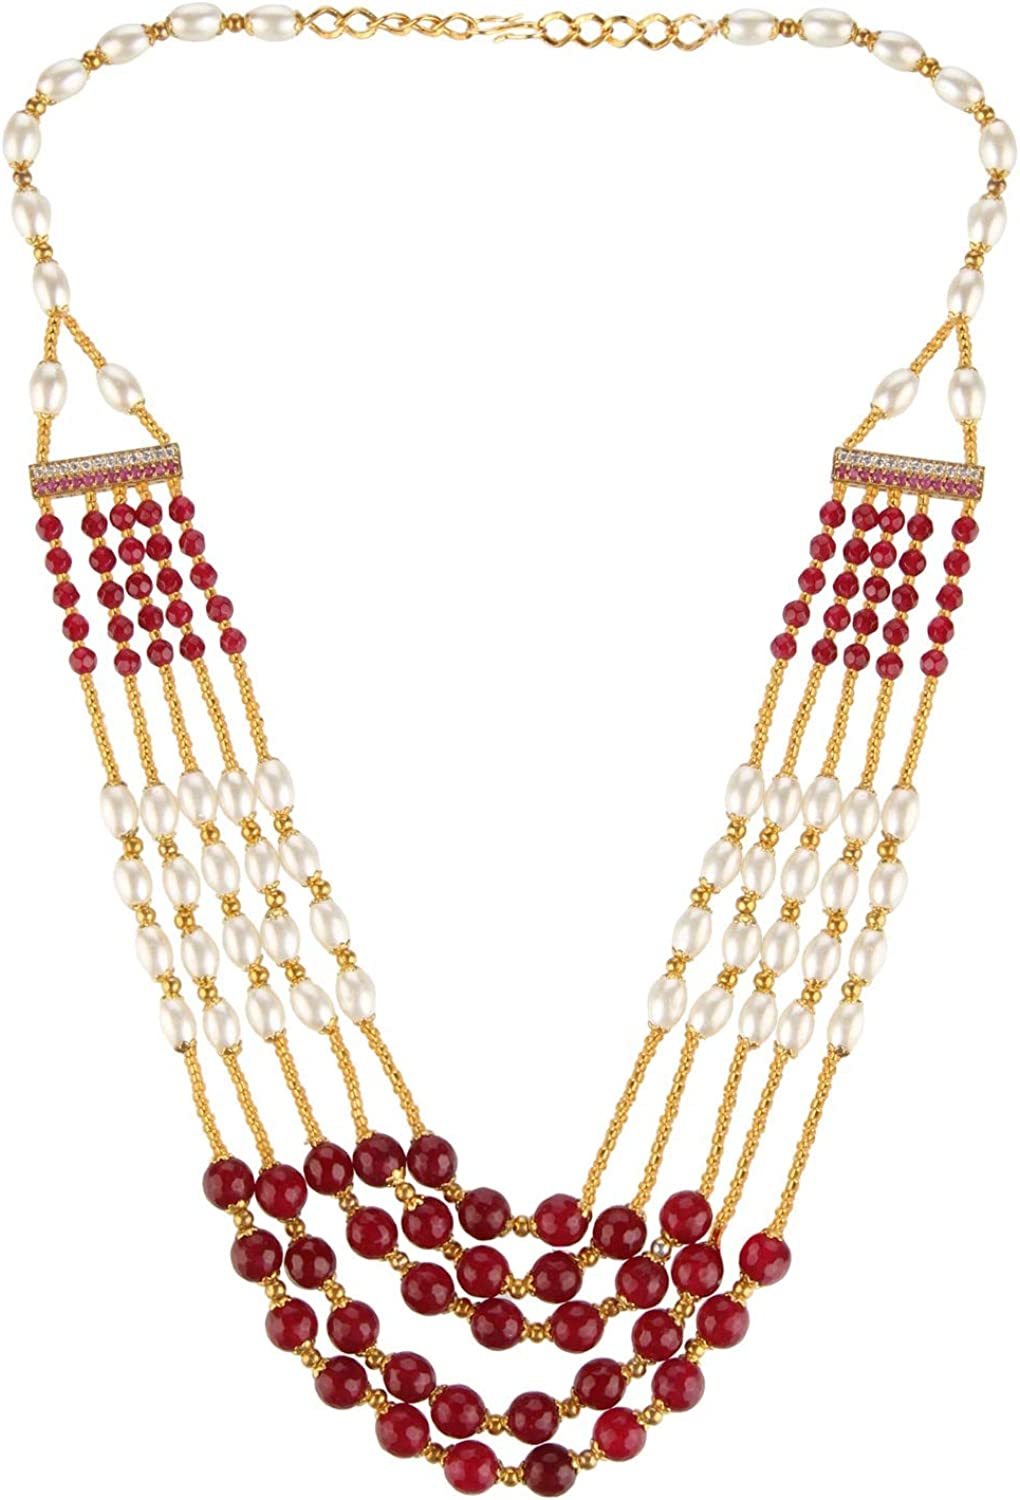 Efulgenz Indian Multi Layered Bollywood Faux Ruby Pearl Beads Wedding Bridal Strand Necklace Jewelry for Women Girls